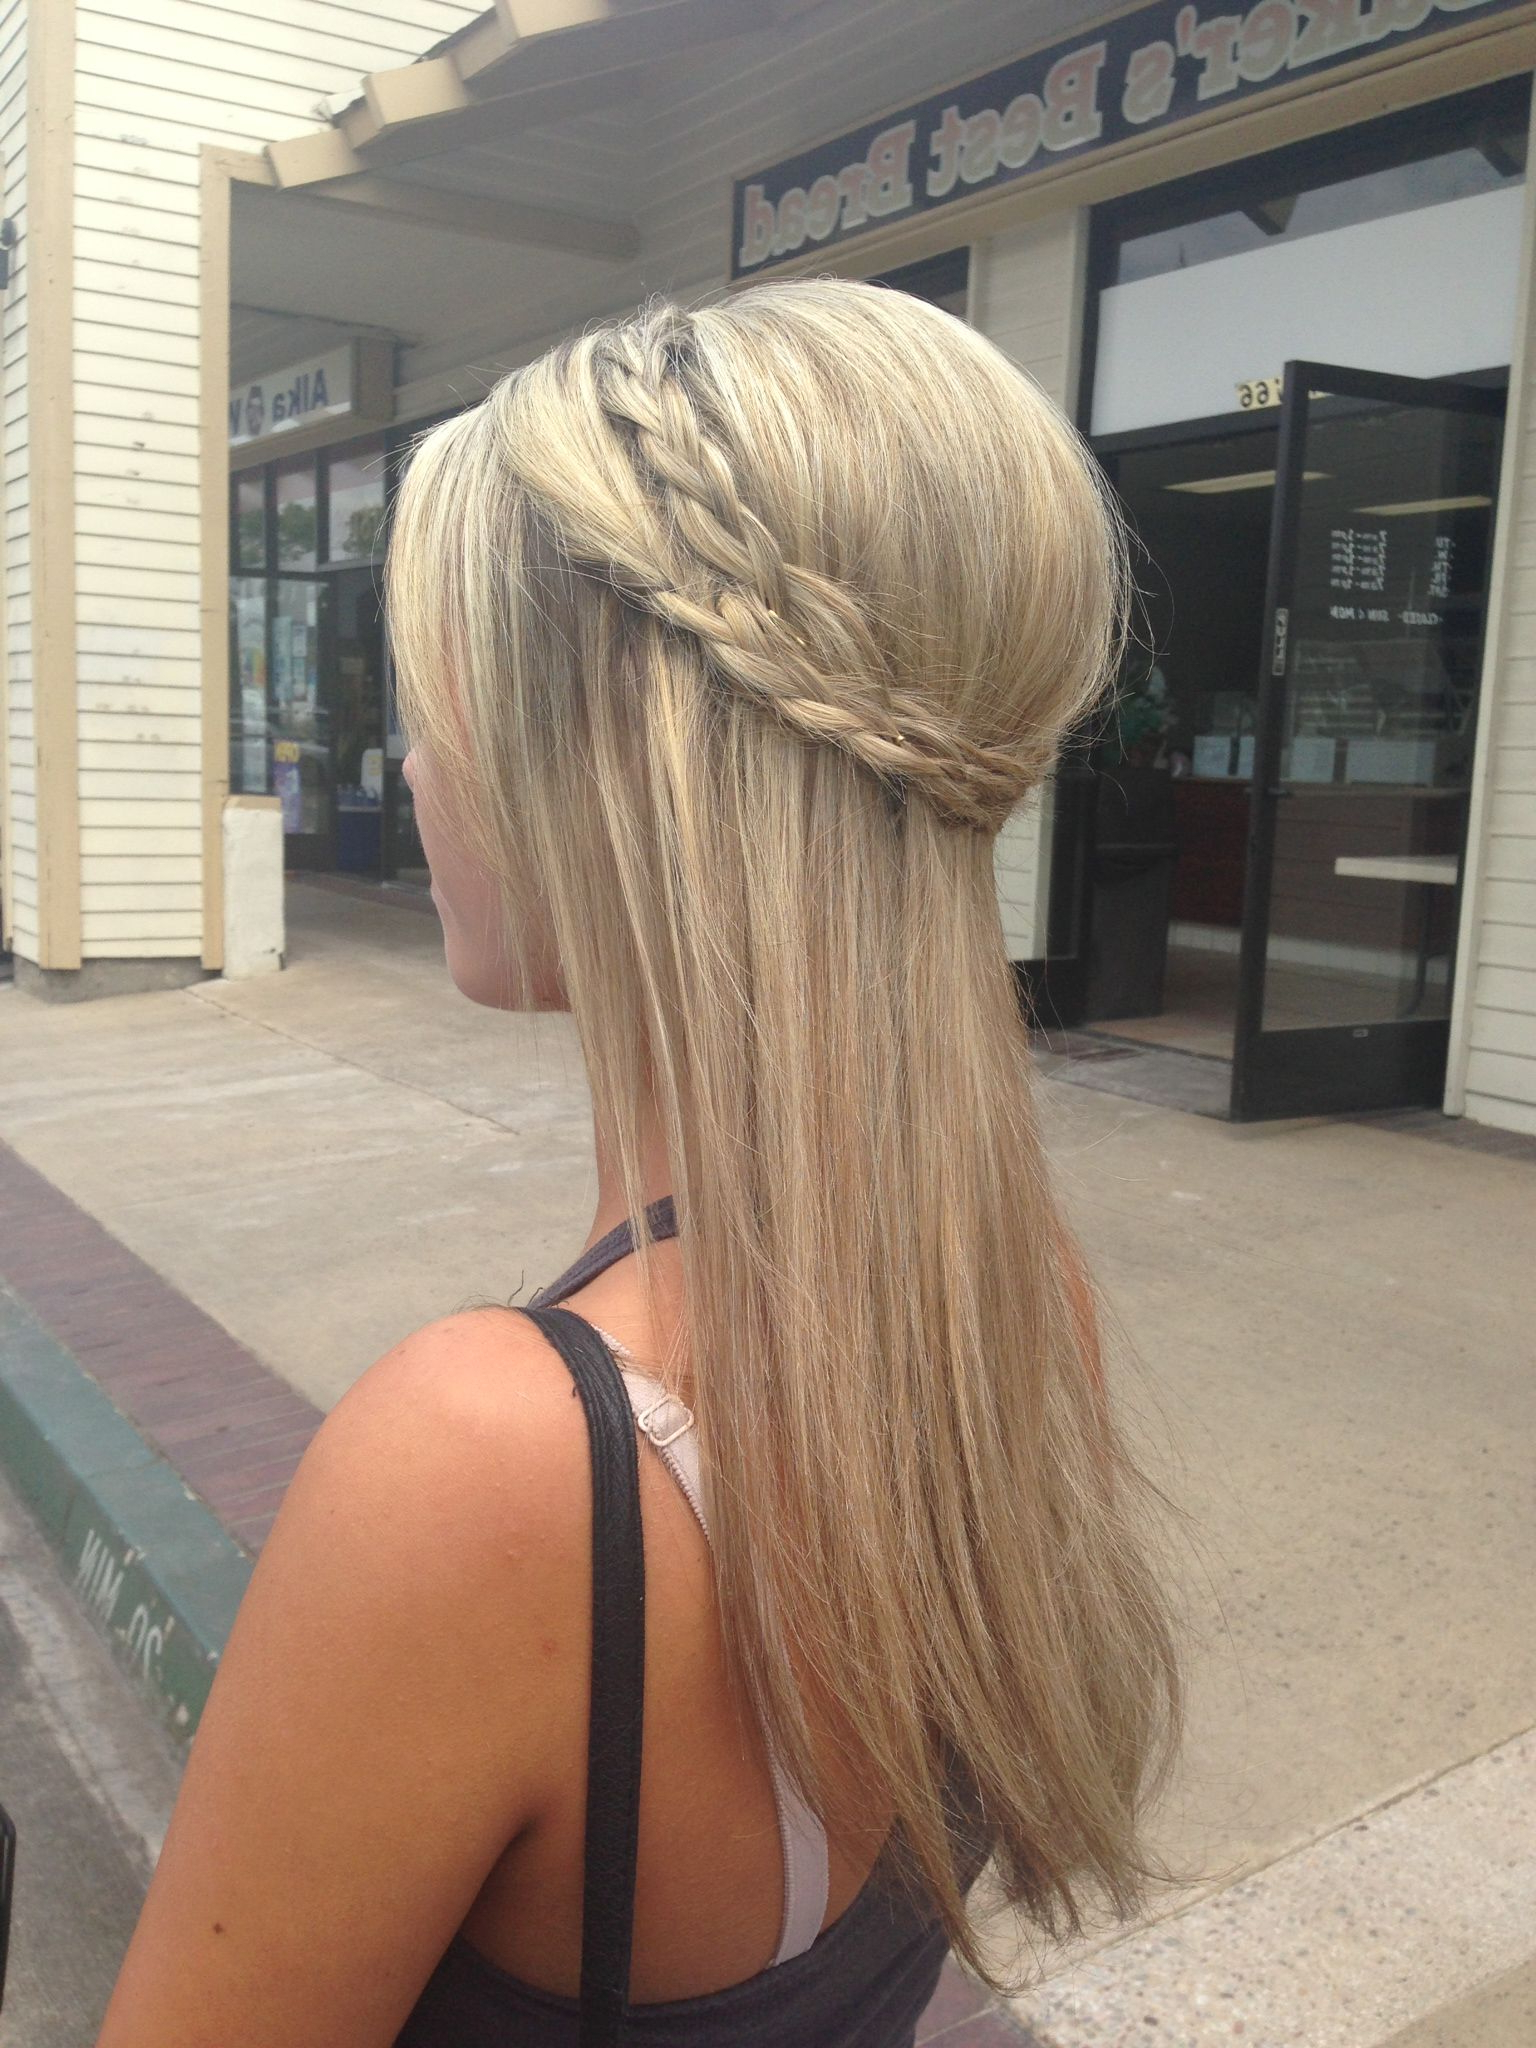 Hair Pertaining To Most Current Teased Prom Updos With Cute Headband (View 7 of 20)